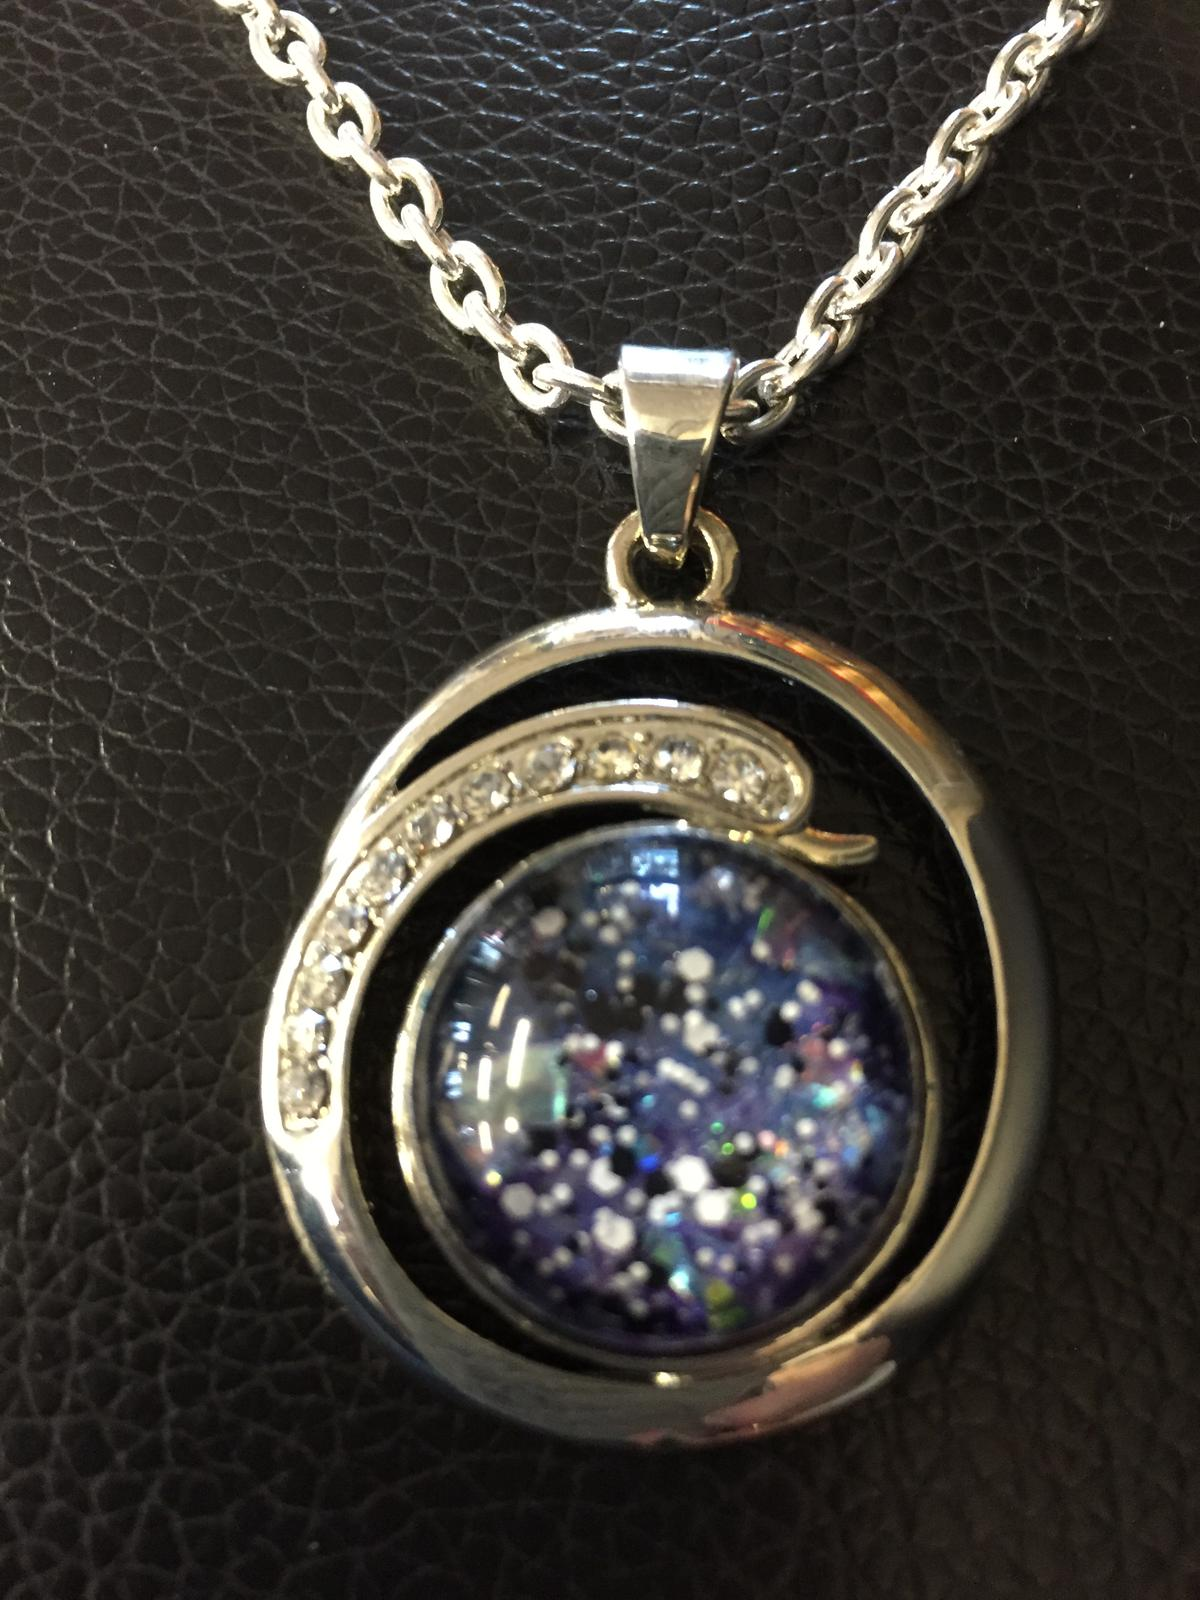 Pendant with insert